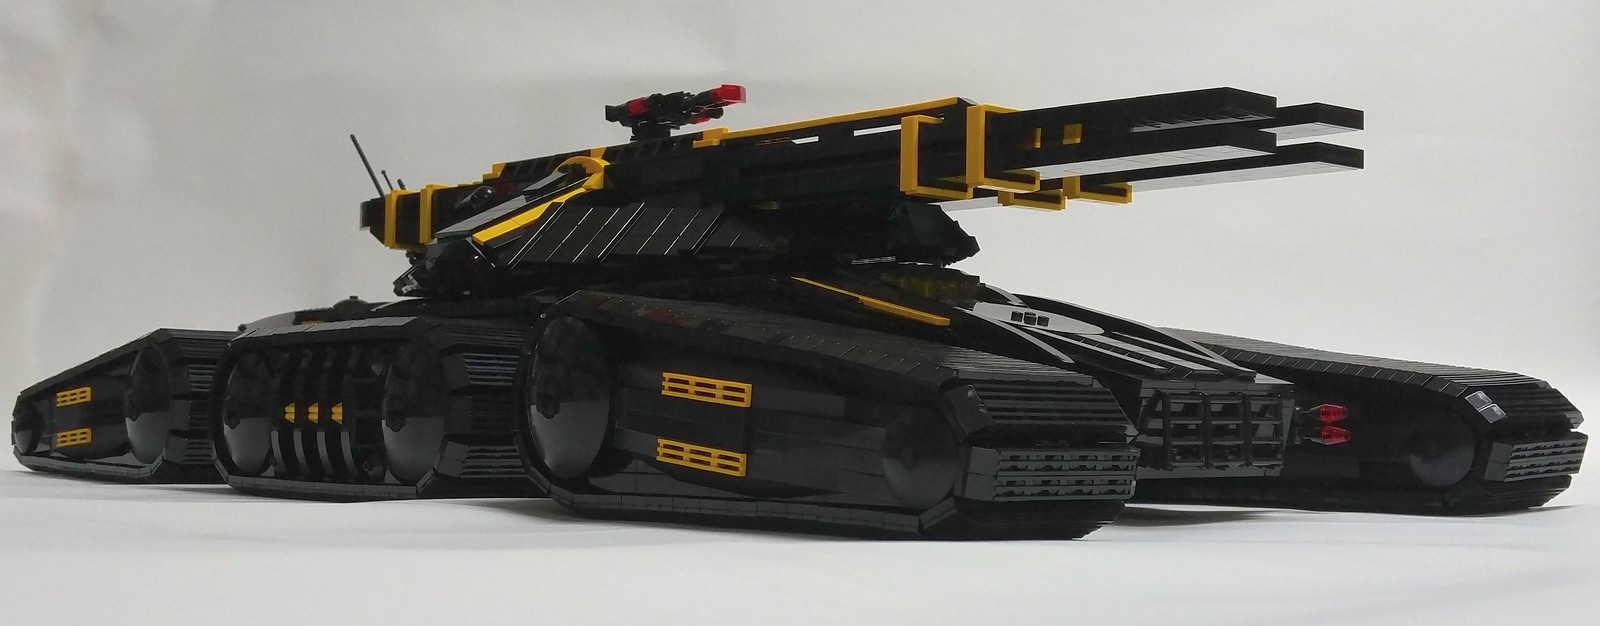 Blacktron Behemoth 01